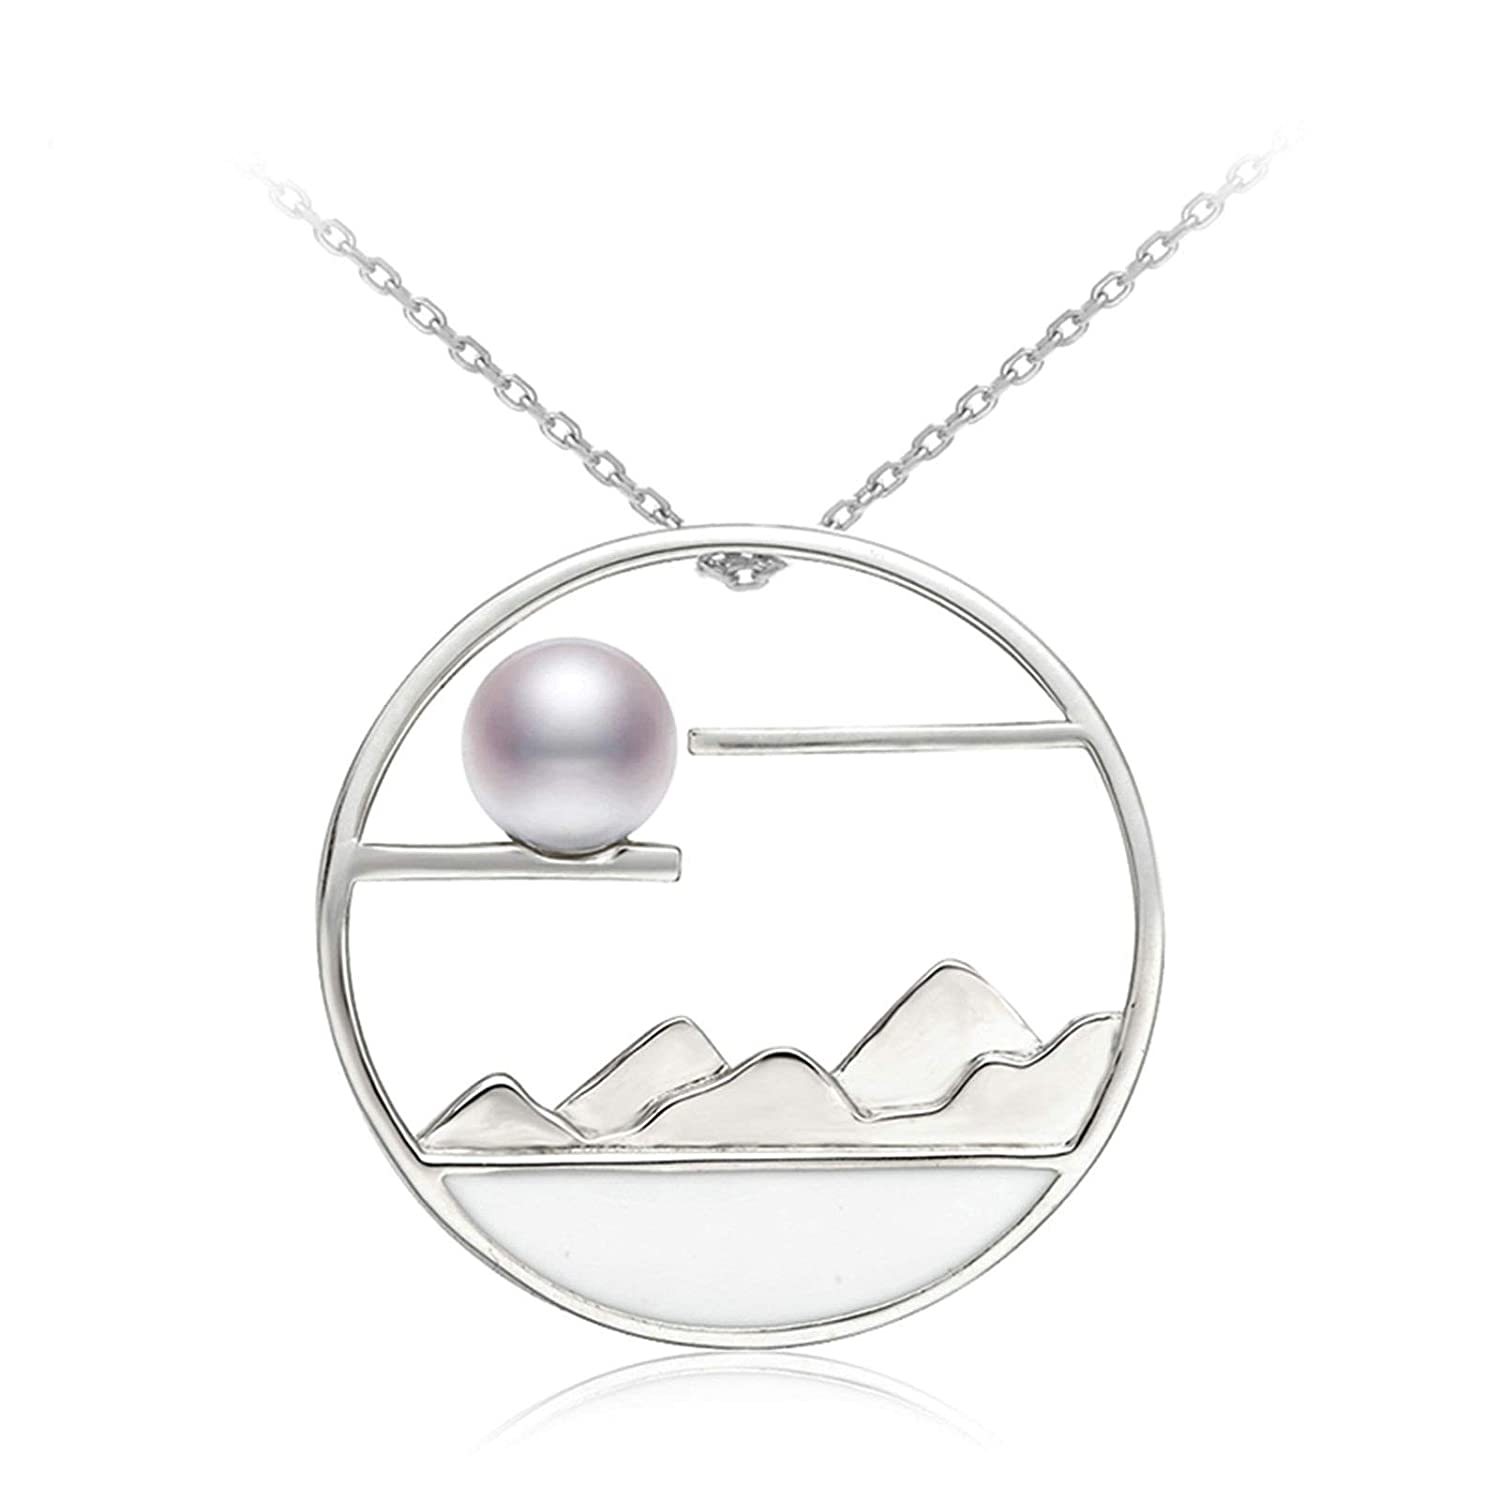 Aooaz Silver Material Necklace Women Girls Mountain and River Pearl Pendant Necklaces Sliver Sliver 45CM